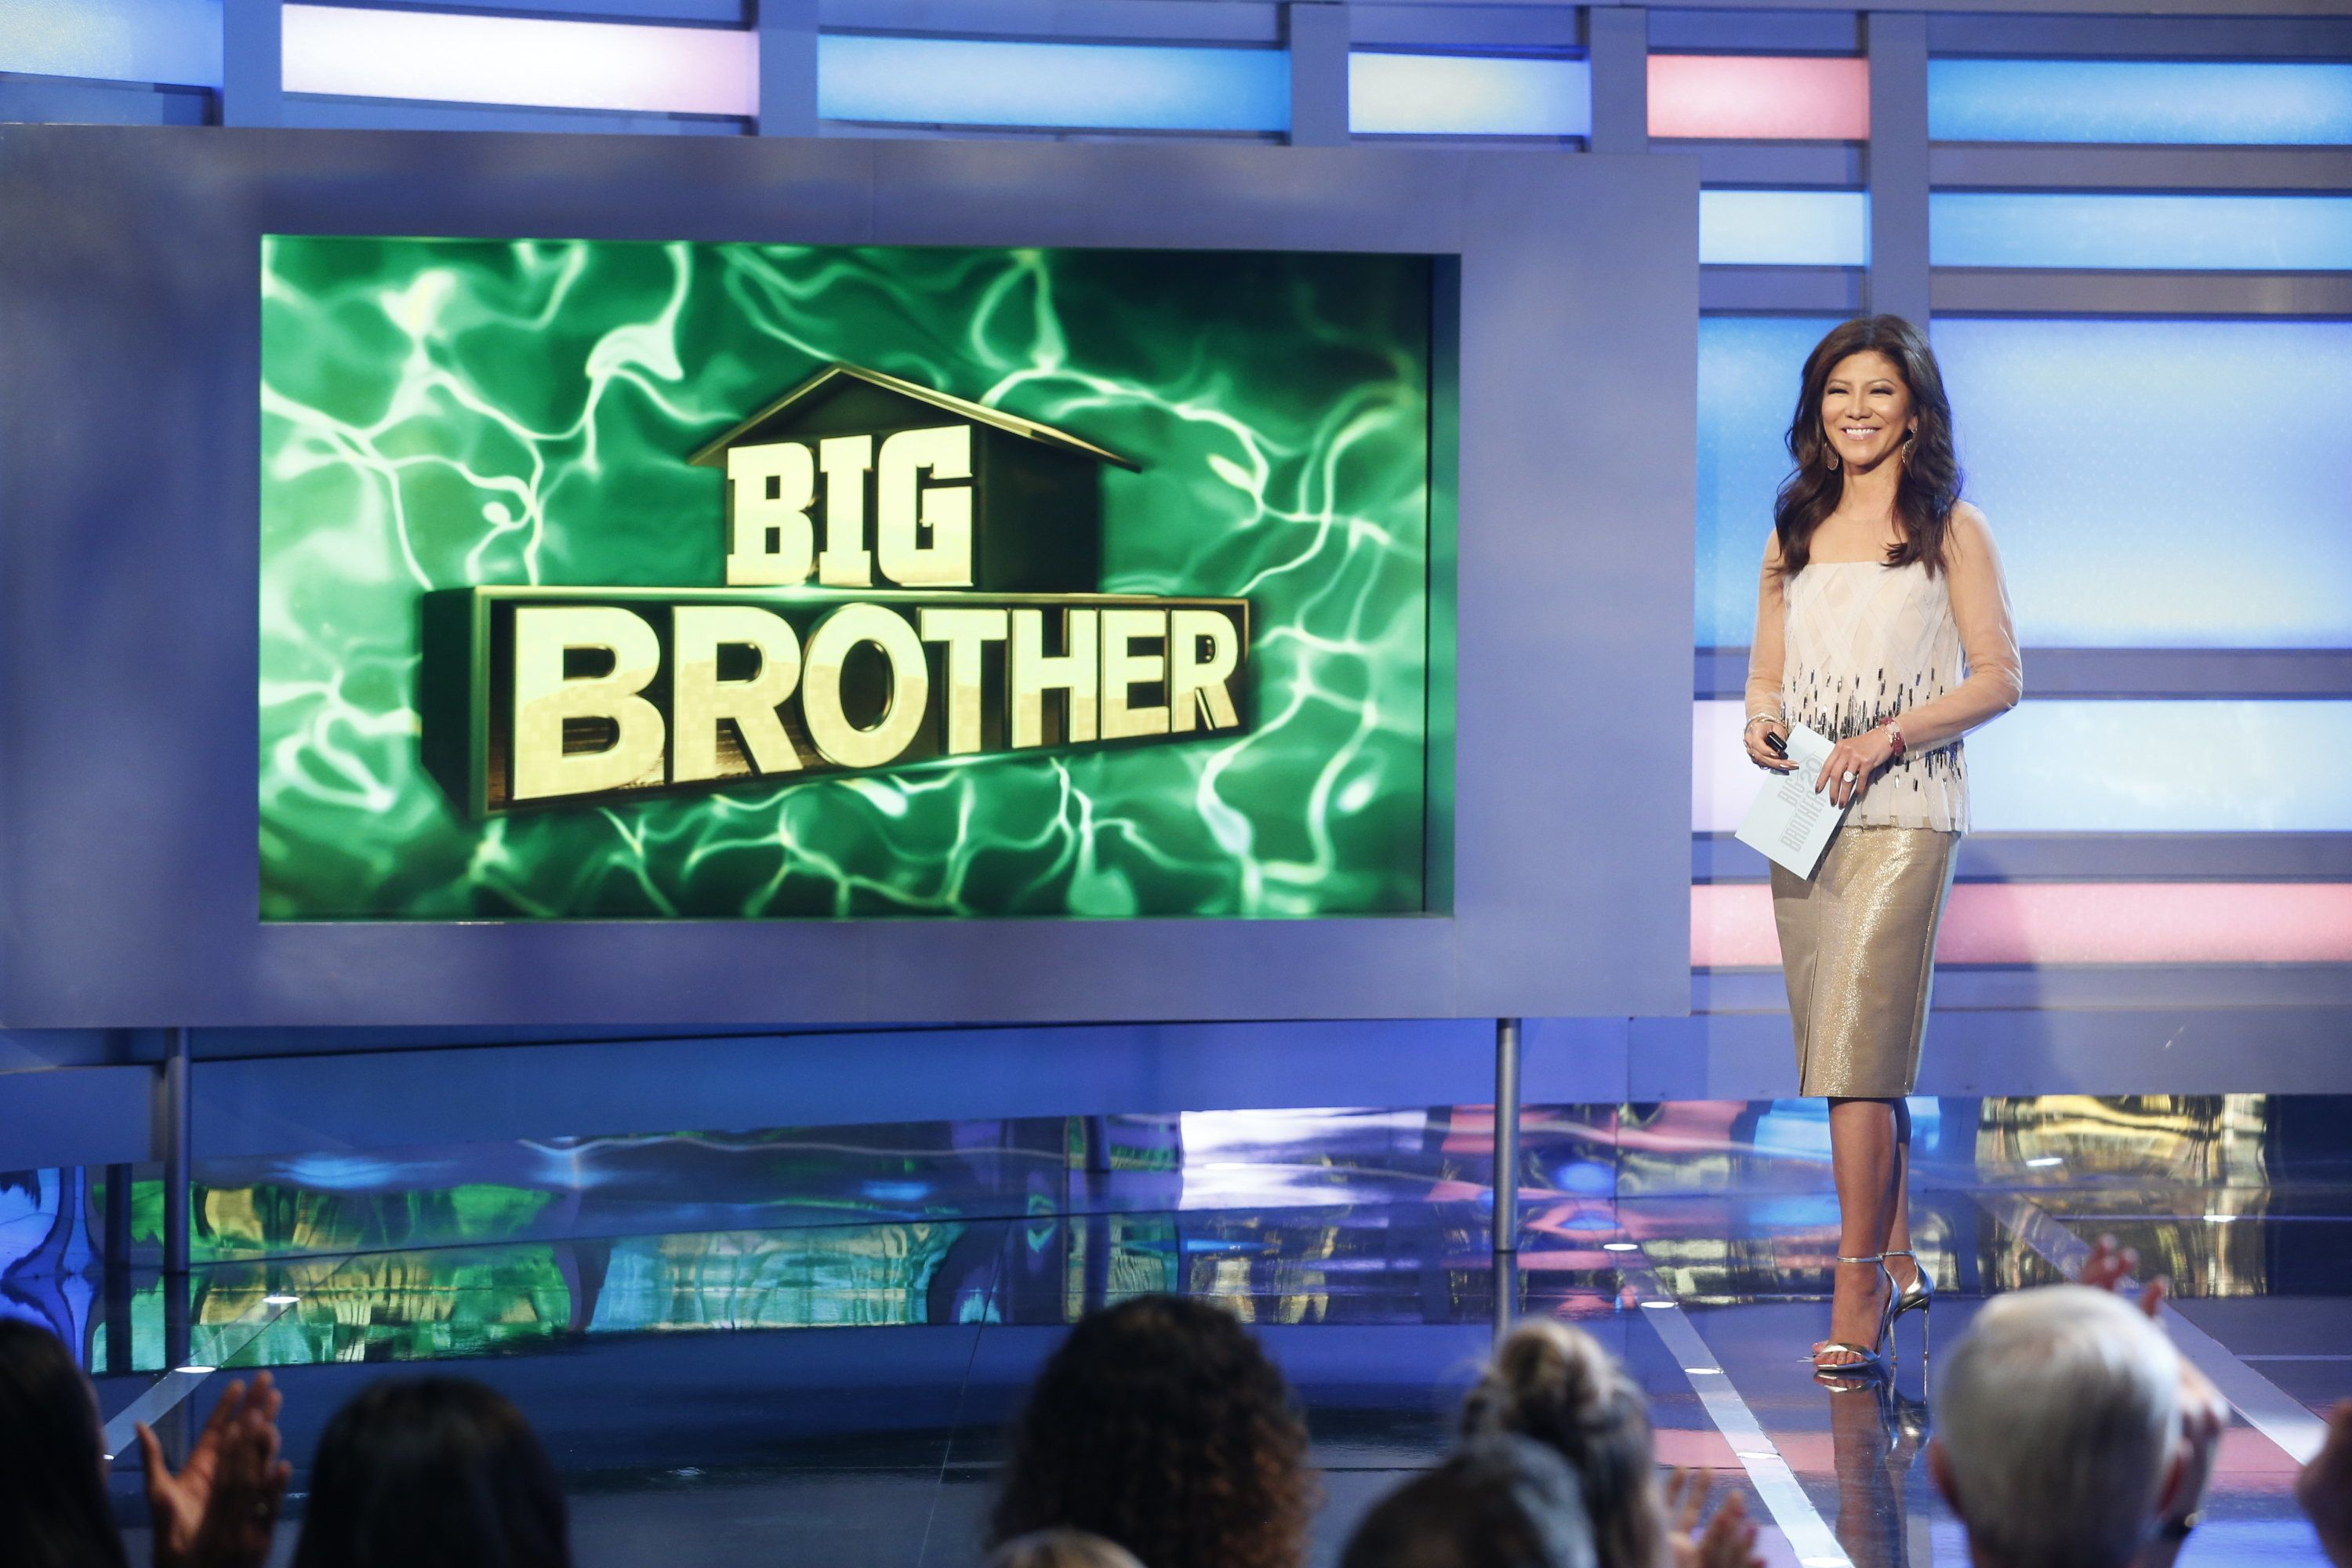 LOS ANGELES - AUGUST 9: Host Julie Chen on the 6th live eviction night.  BIG BROTHER follows a group of people living together in a house outfitted with 94 HD cameras and 113 microphones, recording their every move 24 hours a day. The series airs Sundays (8:00-9:00PM, ET/P/T) Wednesdays and Thursdays (9:00-10:00 PM, ET/PT) on the CBS Television Network. (Photo by Sonja Flemming/CBS via Getty Images)